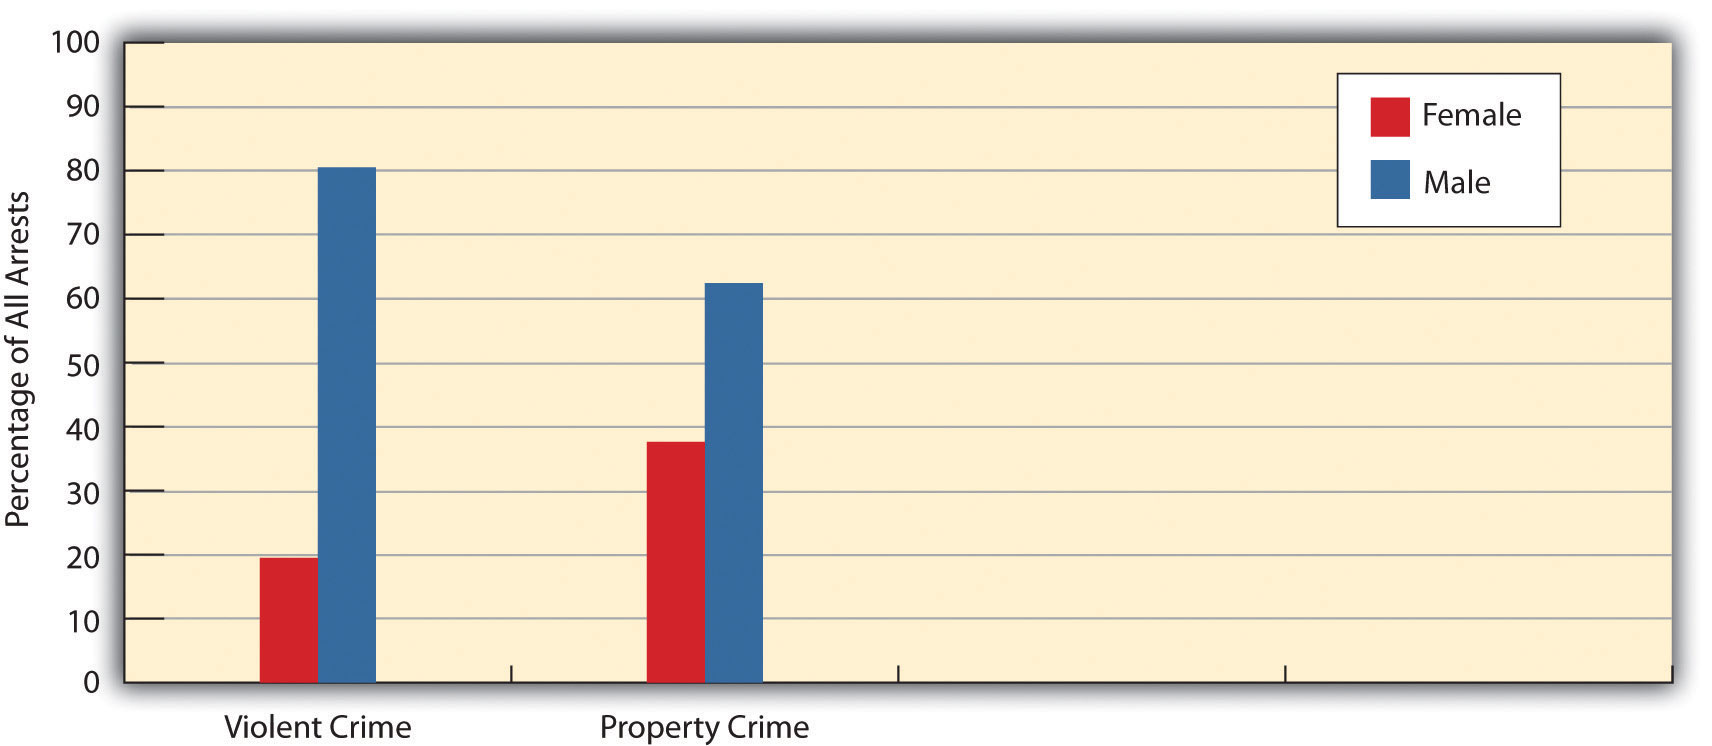 Gender and Arrest graph, showing the percentage of all arrests for men and women. This illustrates that men commit 80% of violent crime, and around 62% of property crime.